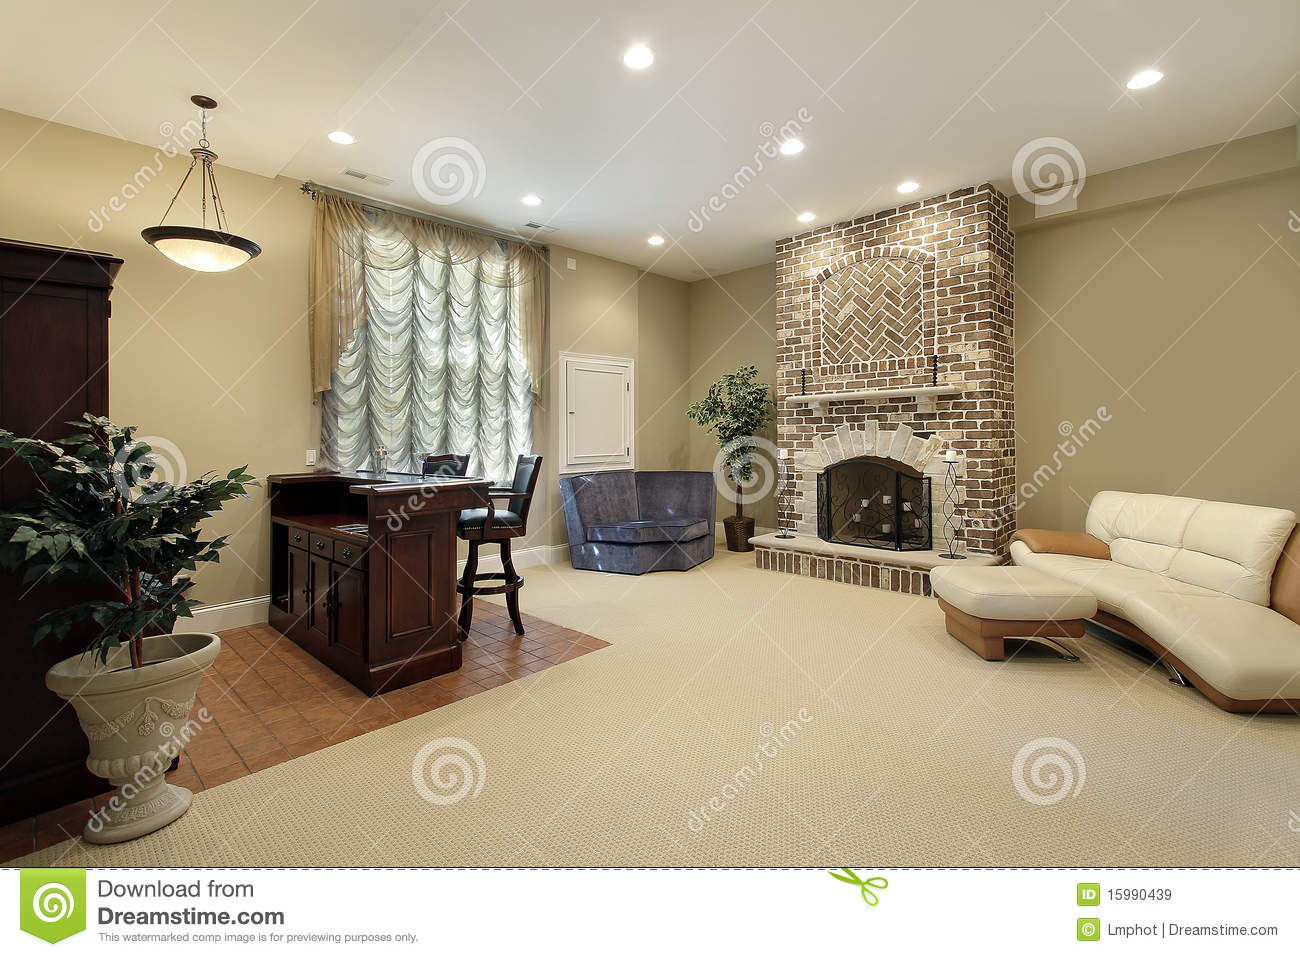 leather chair ottoman grey louis basement with brick fireplace stock image - image: 15990439